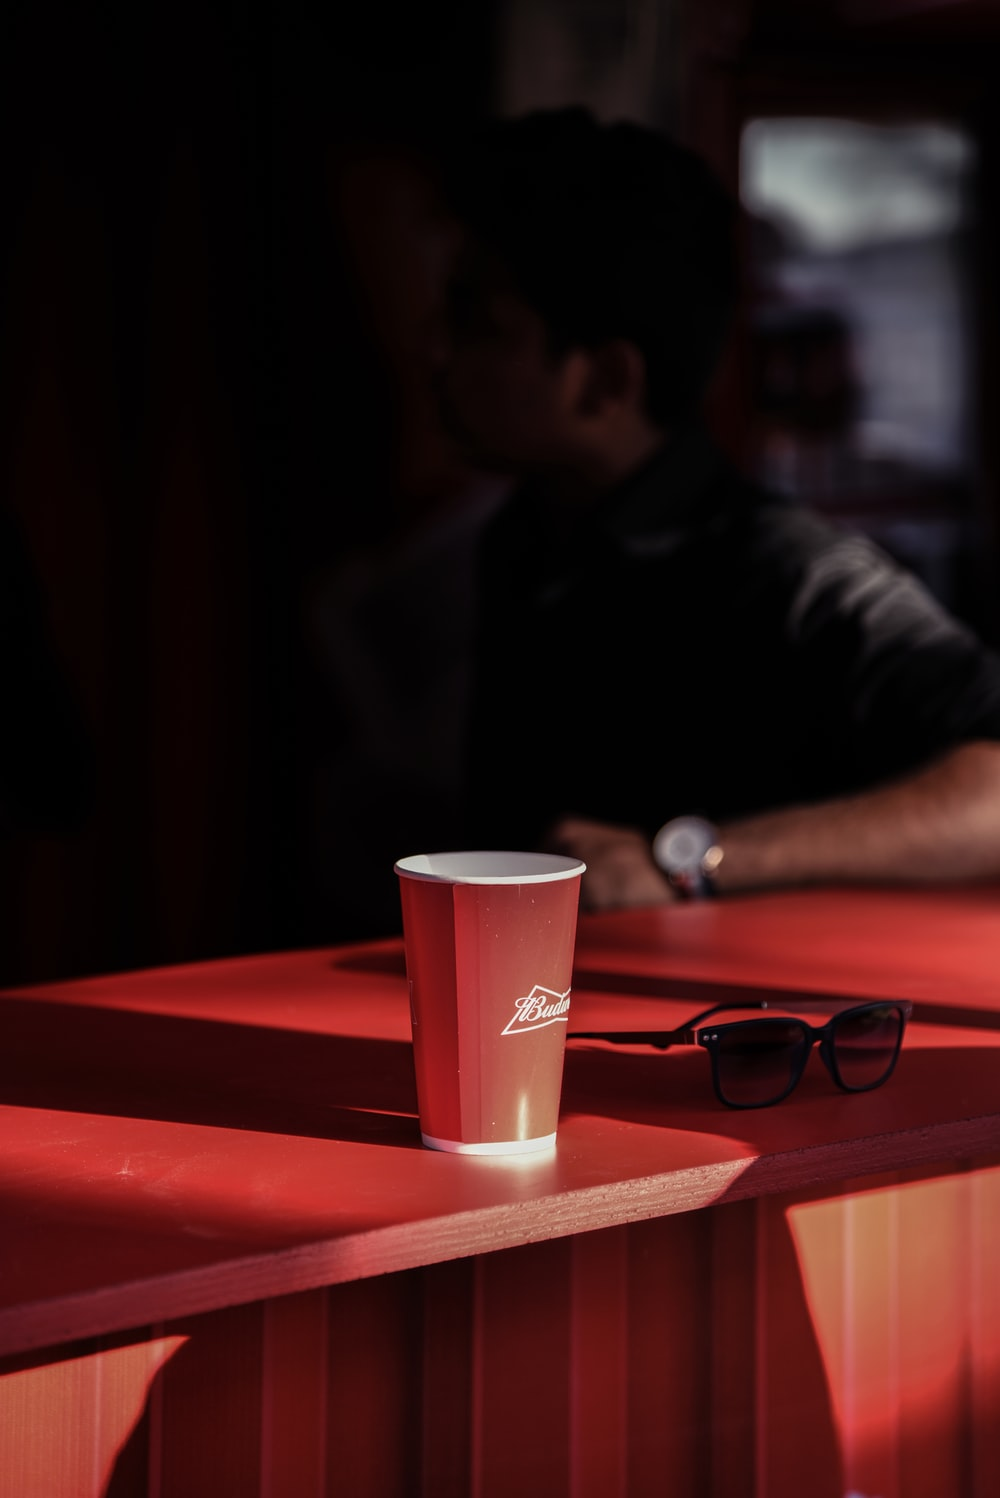 man sitting beside red and white cup next to black framed sunglasses